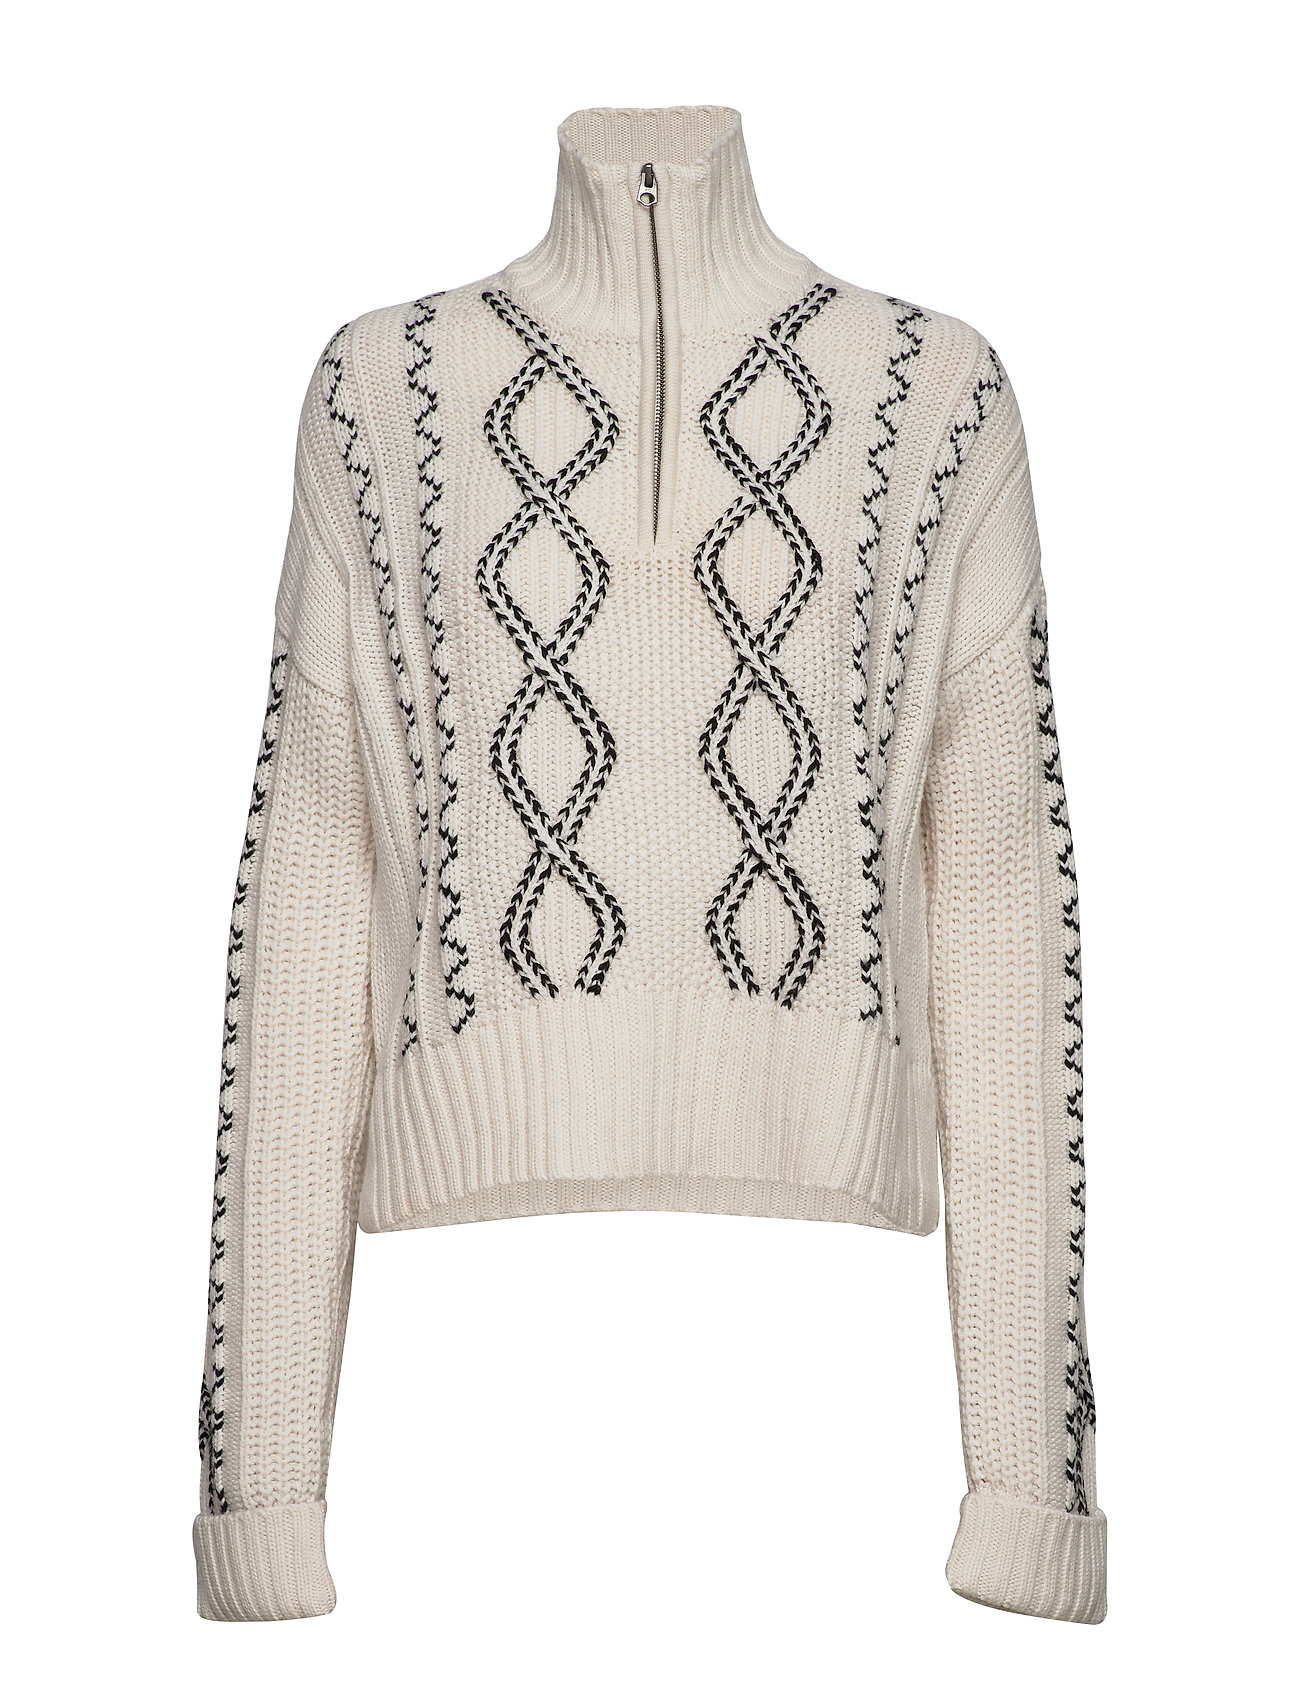 French Connection SUSA CABLE KNITS ZIP NECK JMPR - CLASSIC CREAM/BLACK